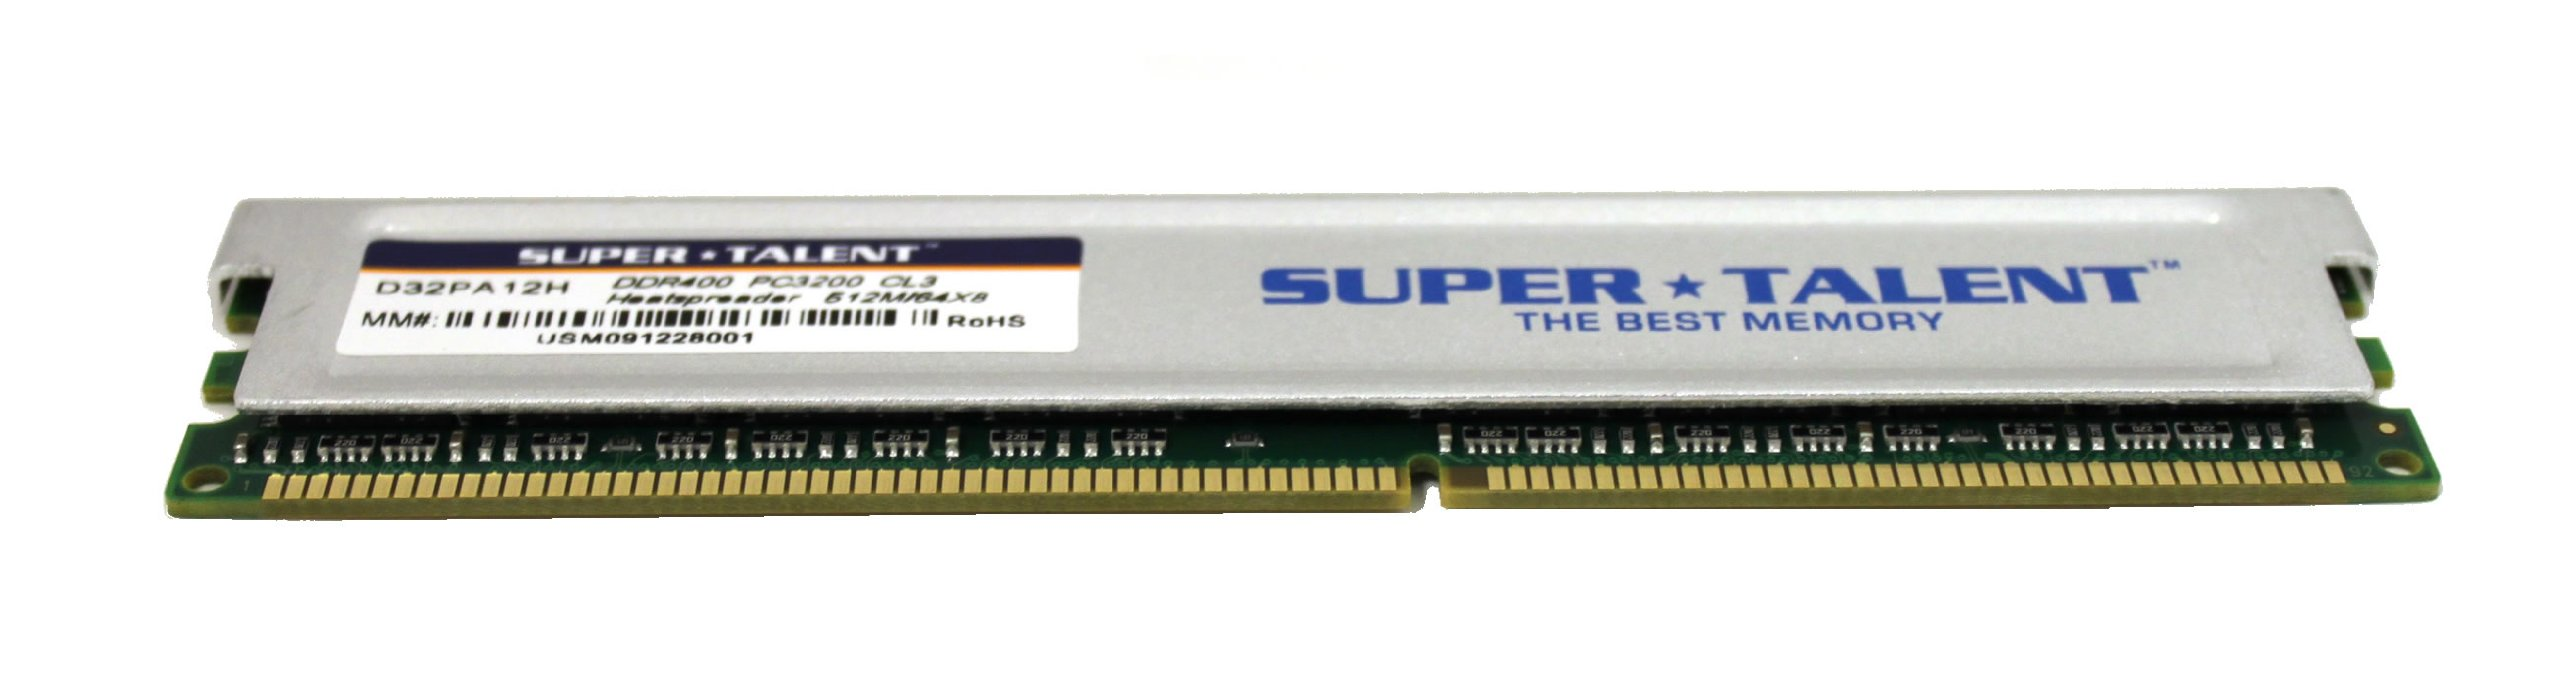 Super Talent DDR400 512MB/64X8 CL3 8CH Memory (PC and MAC G5) D32PA12H by Super Talent (Image #1)